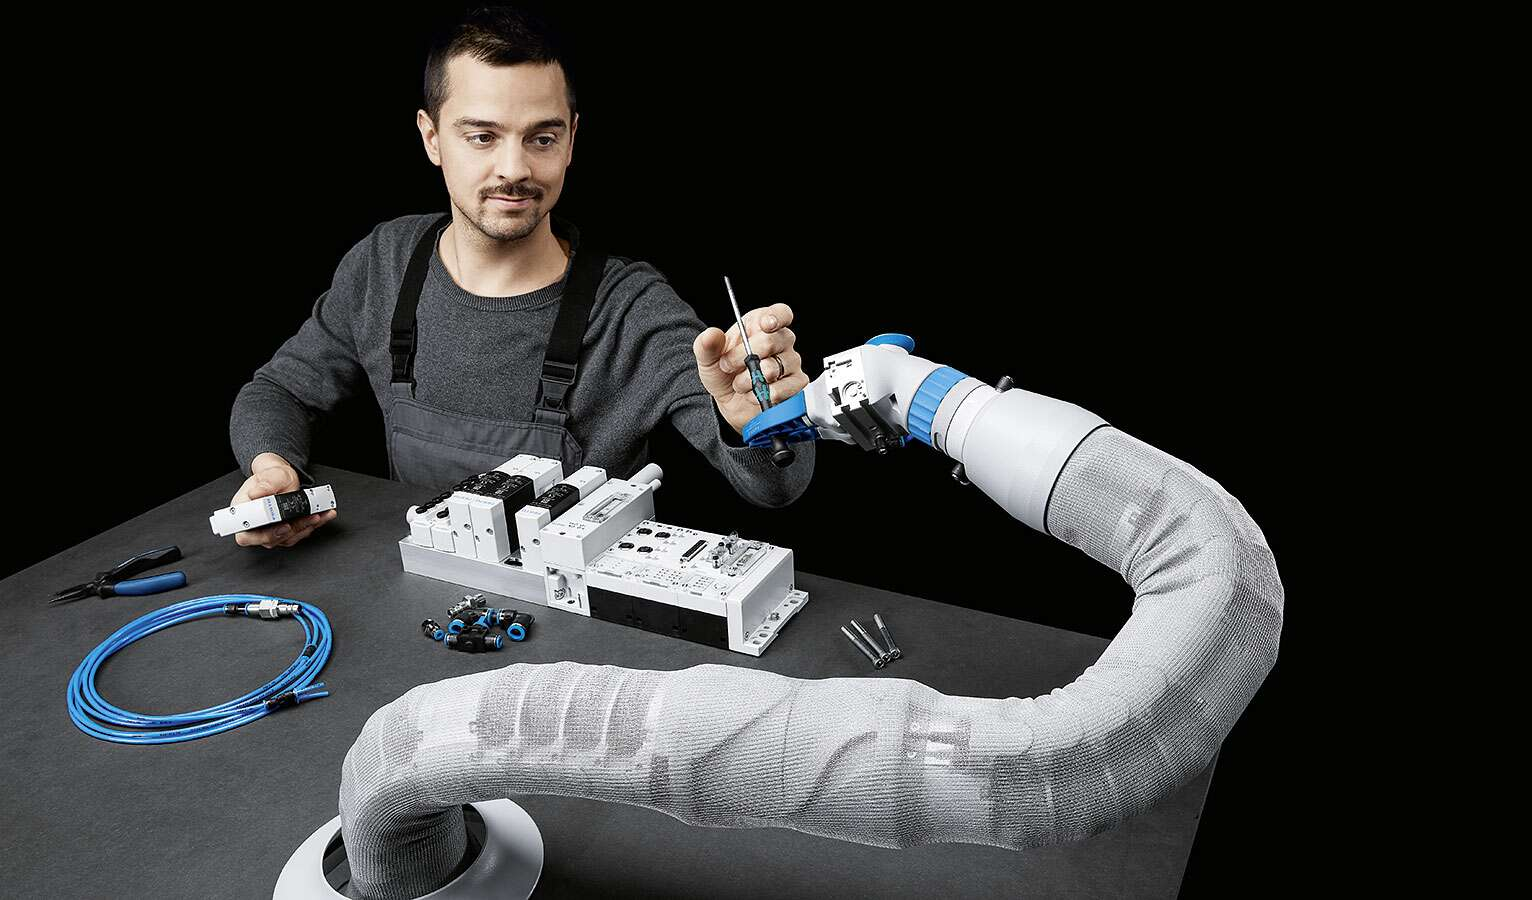 Human and robot work hand in hand – the BionicSoftArm makes it possible.